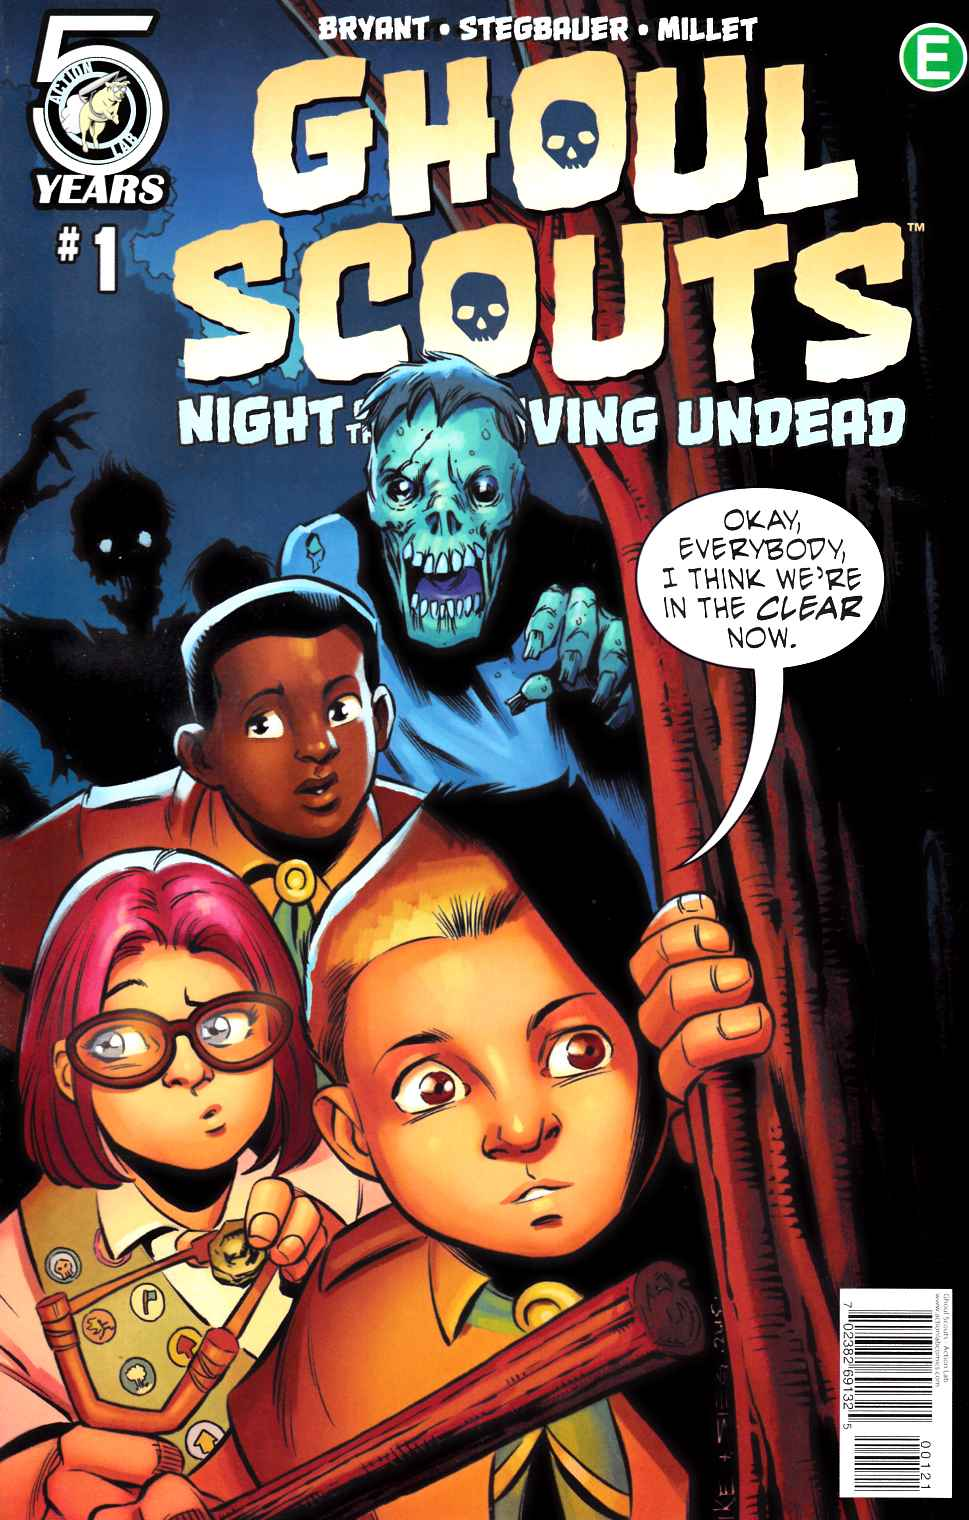 Ghoul Scouts Night of the Unliving Undead #1 Cover B [Action Lab Comic] THUMBNAIL